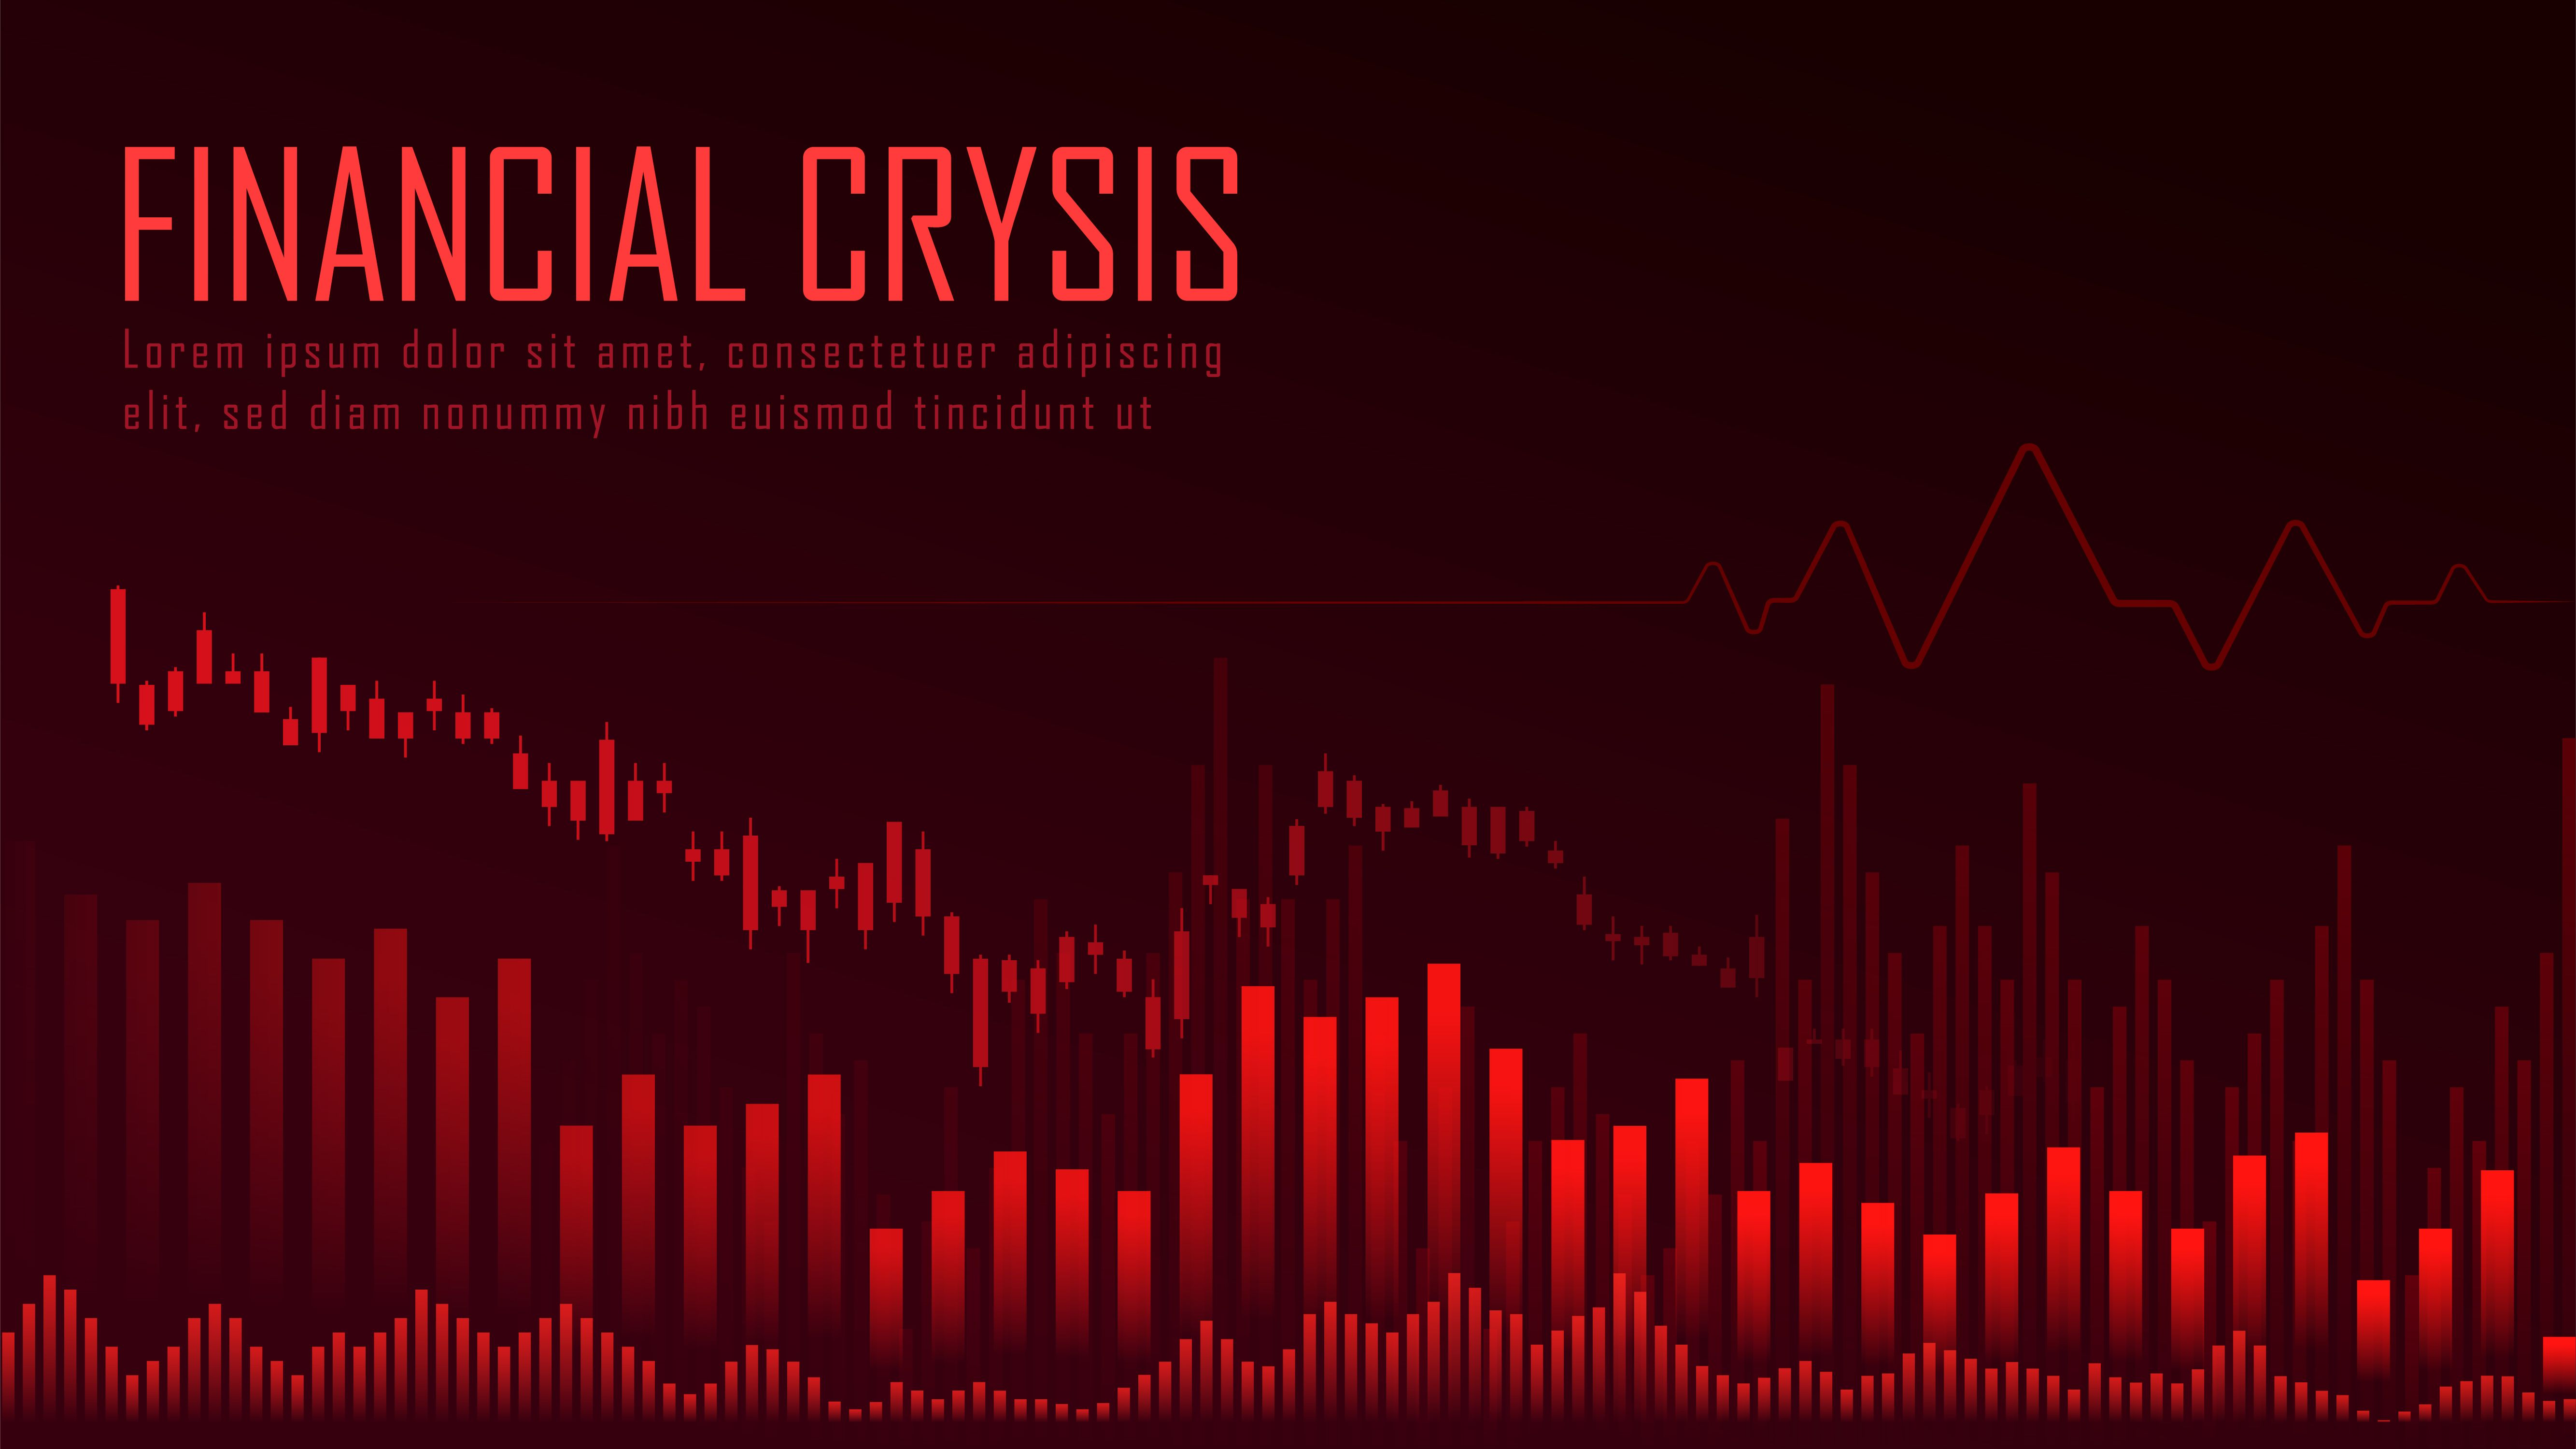 Financial Crysis Graphic Concept In 2020 Financial Stock Market Economic Trends